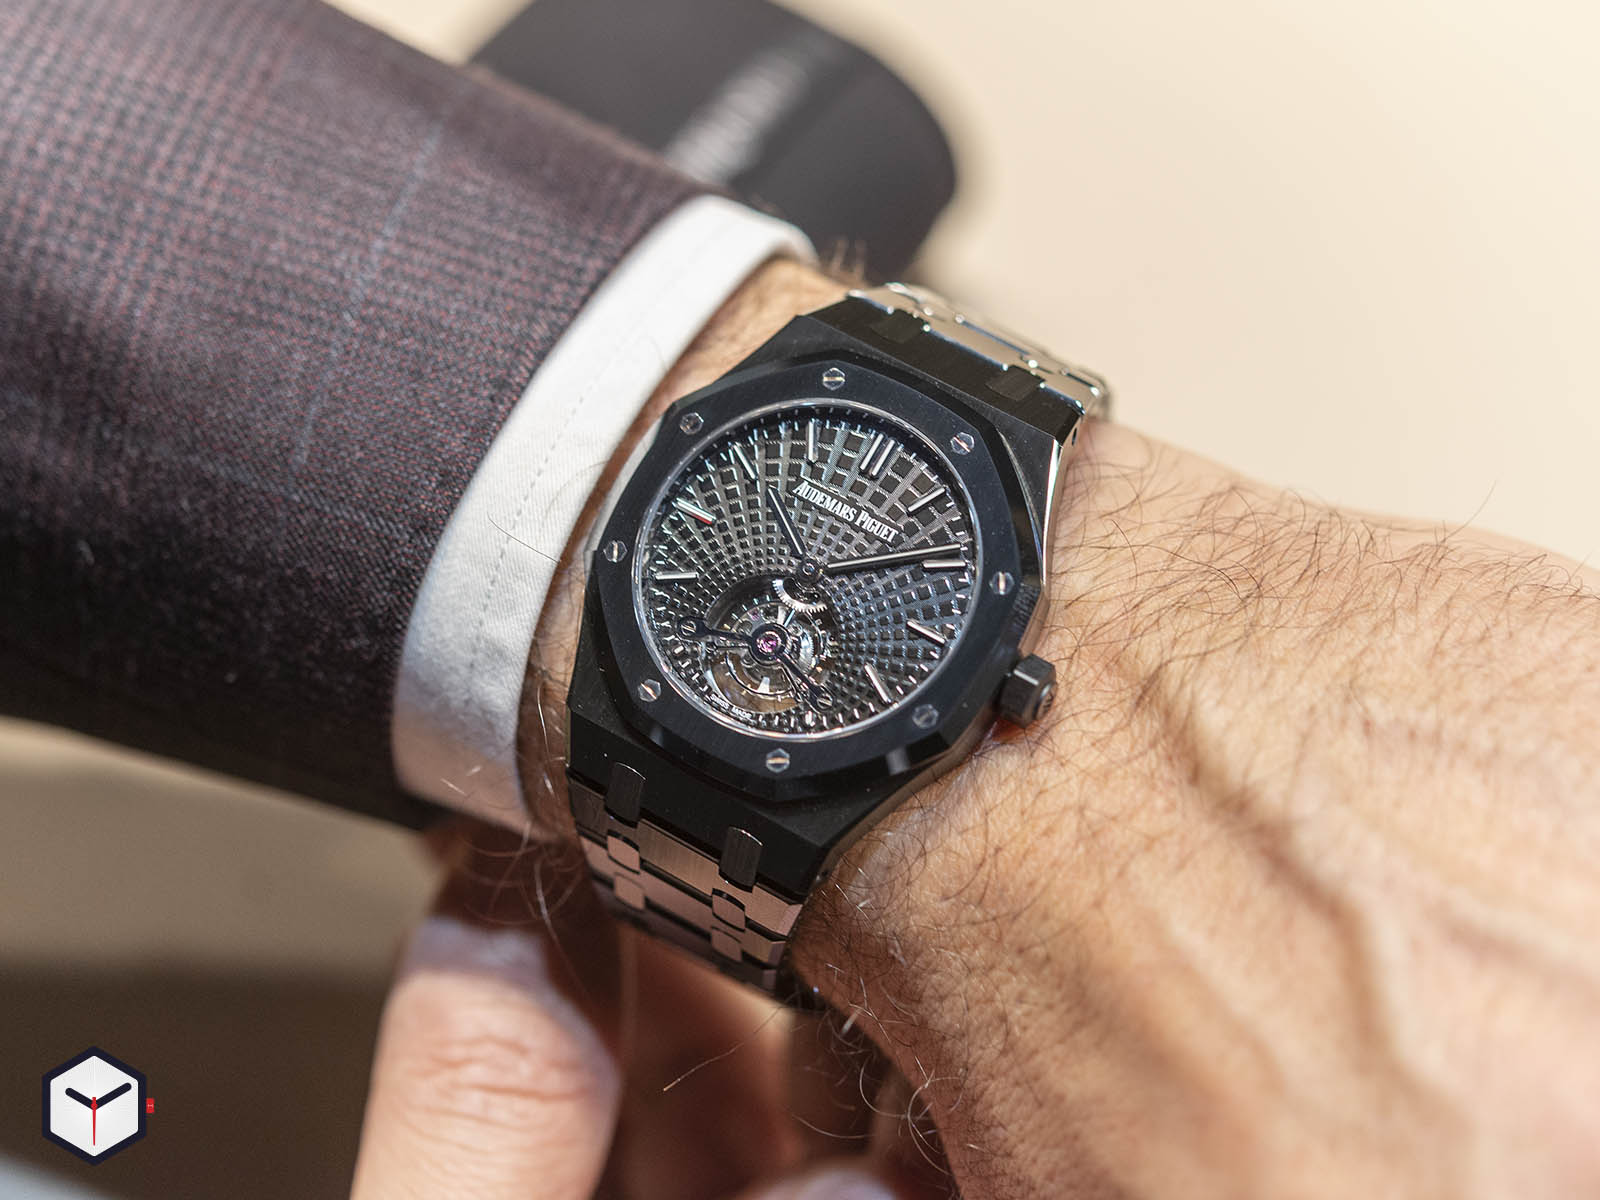 audemars-piguet-royal-oak-tourbillon-extra-thin-black-ceramic-9.jpg